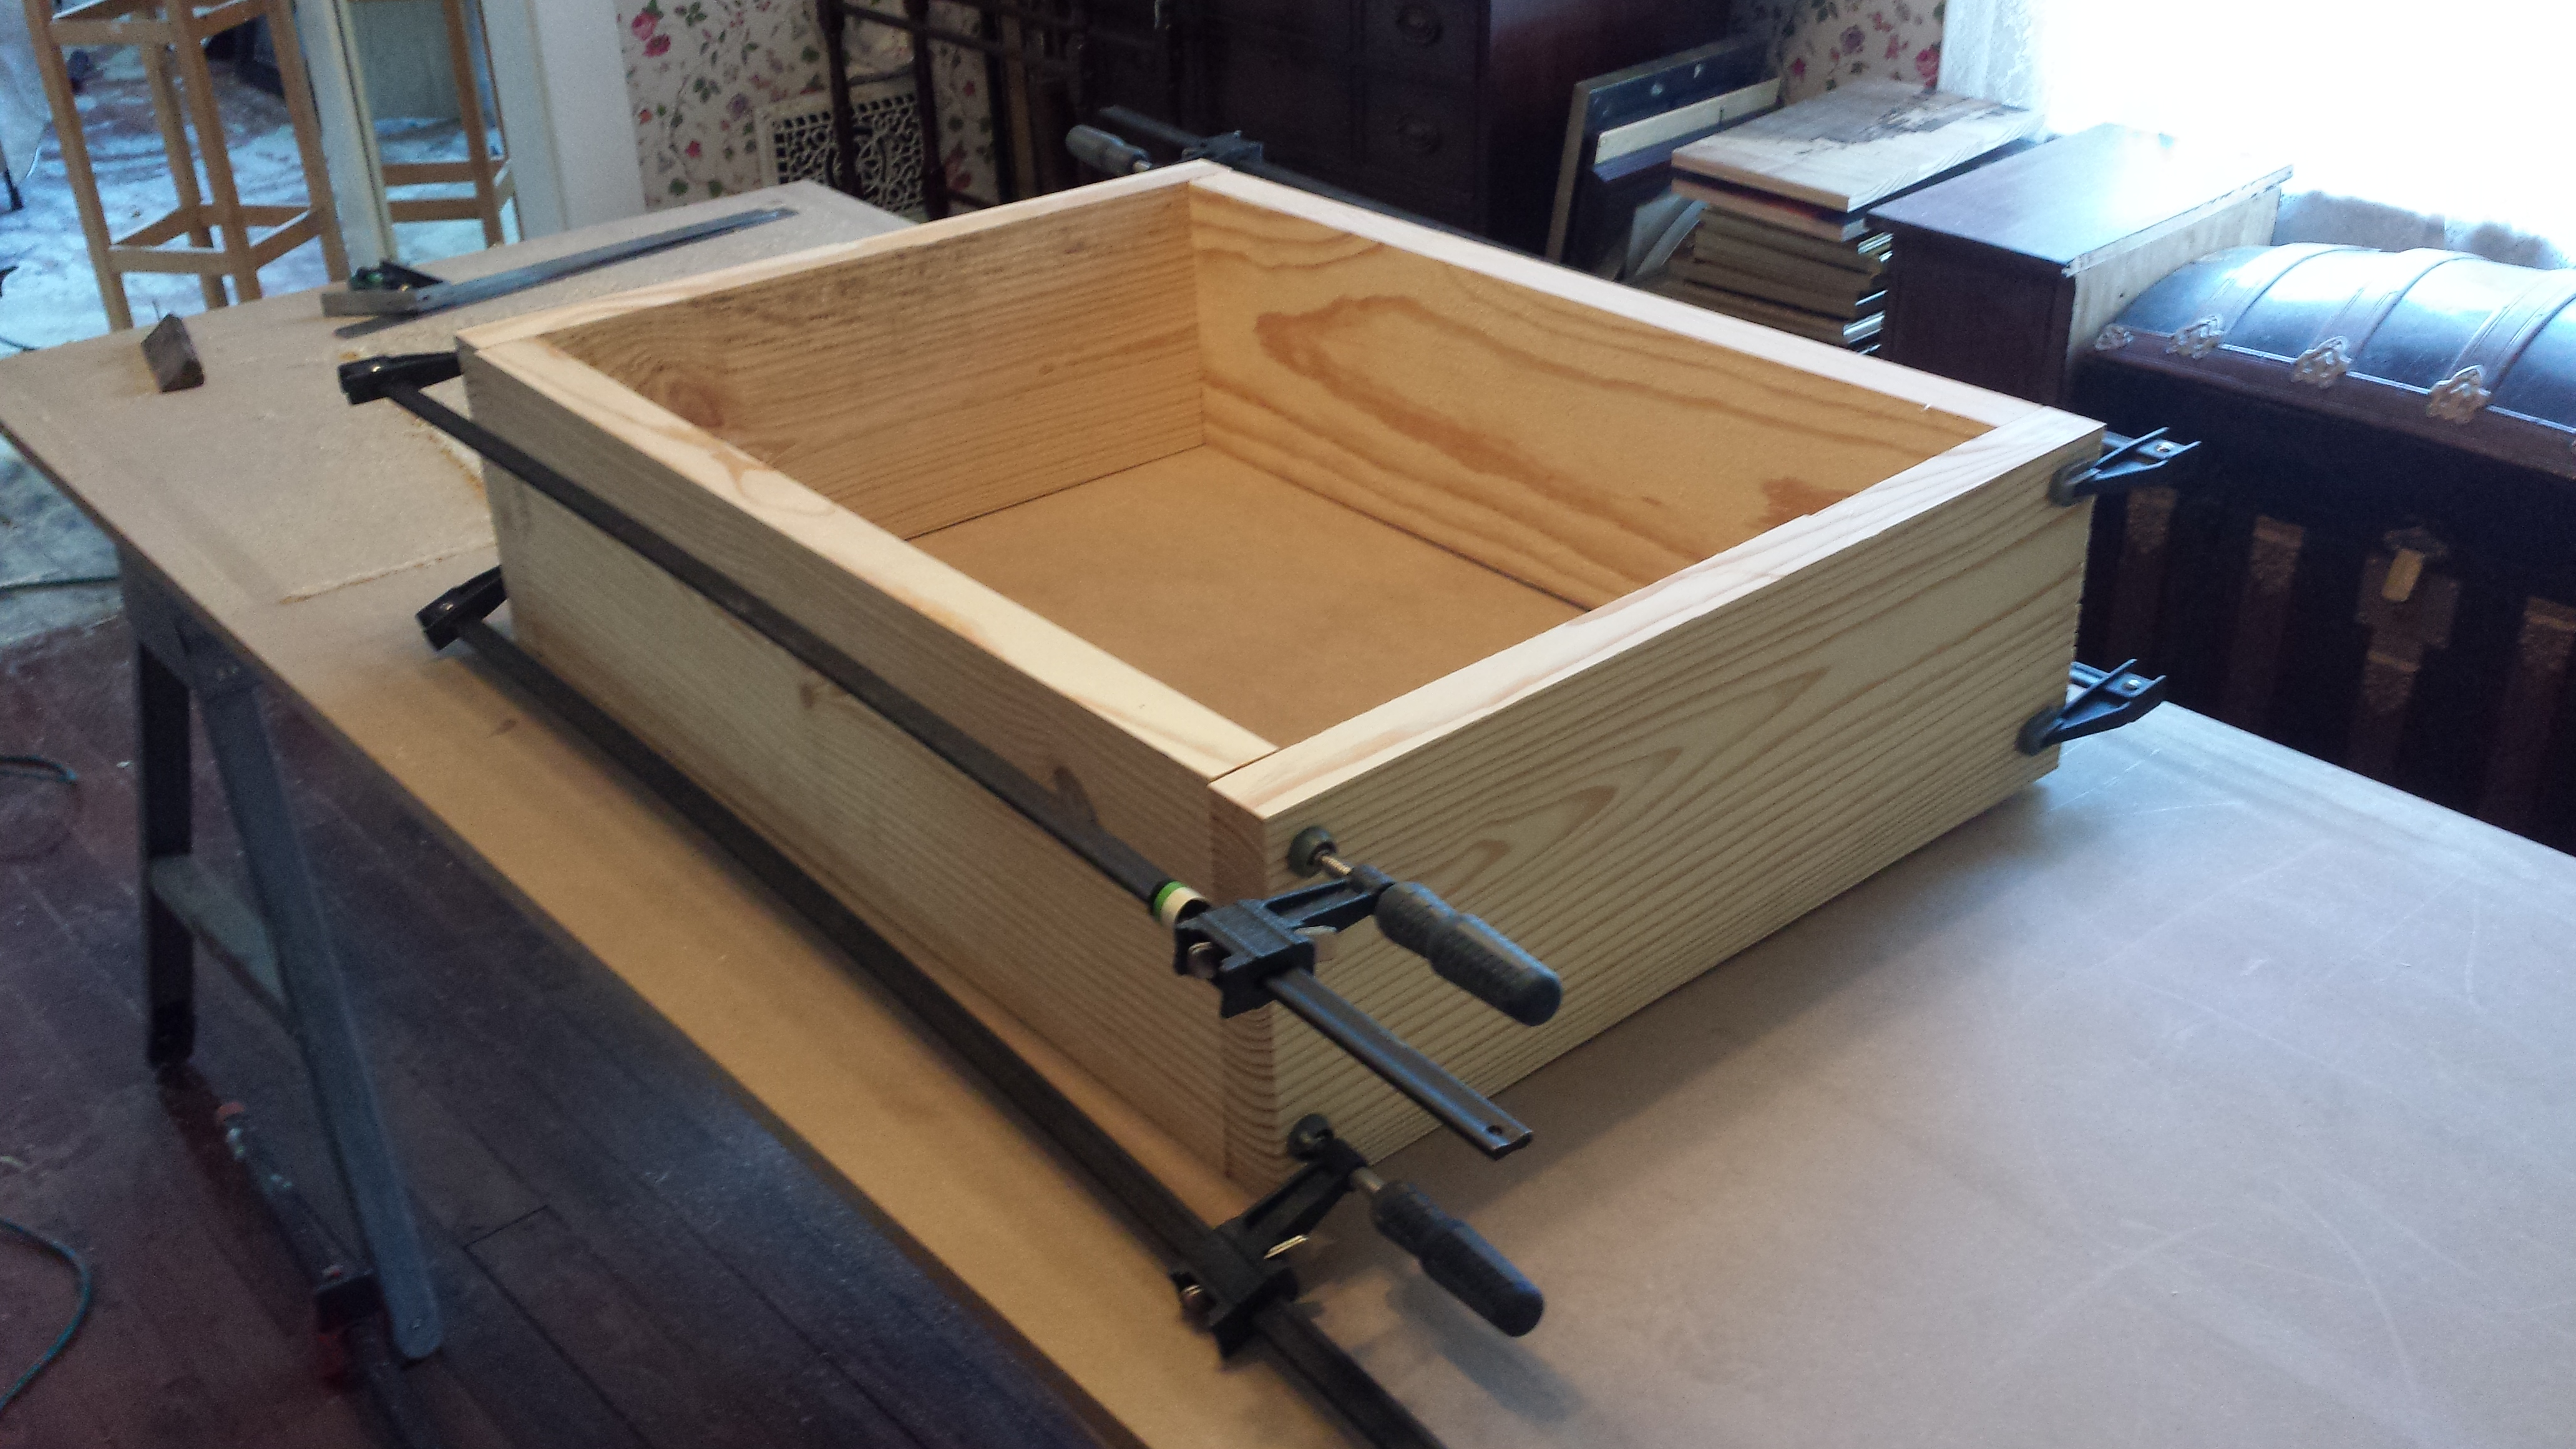 Stunning Blocks Vivacious Victorian Pocket Hole Joinery Strength Pocket Hole Joinery Youtube If You Used A Pocket Hole Jig Explaining Process Just A Giant Game houzz-03 Pocket Hole Joinery